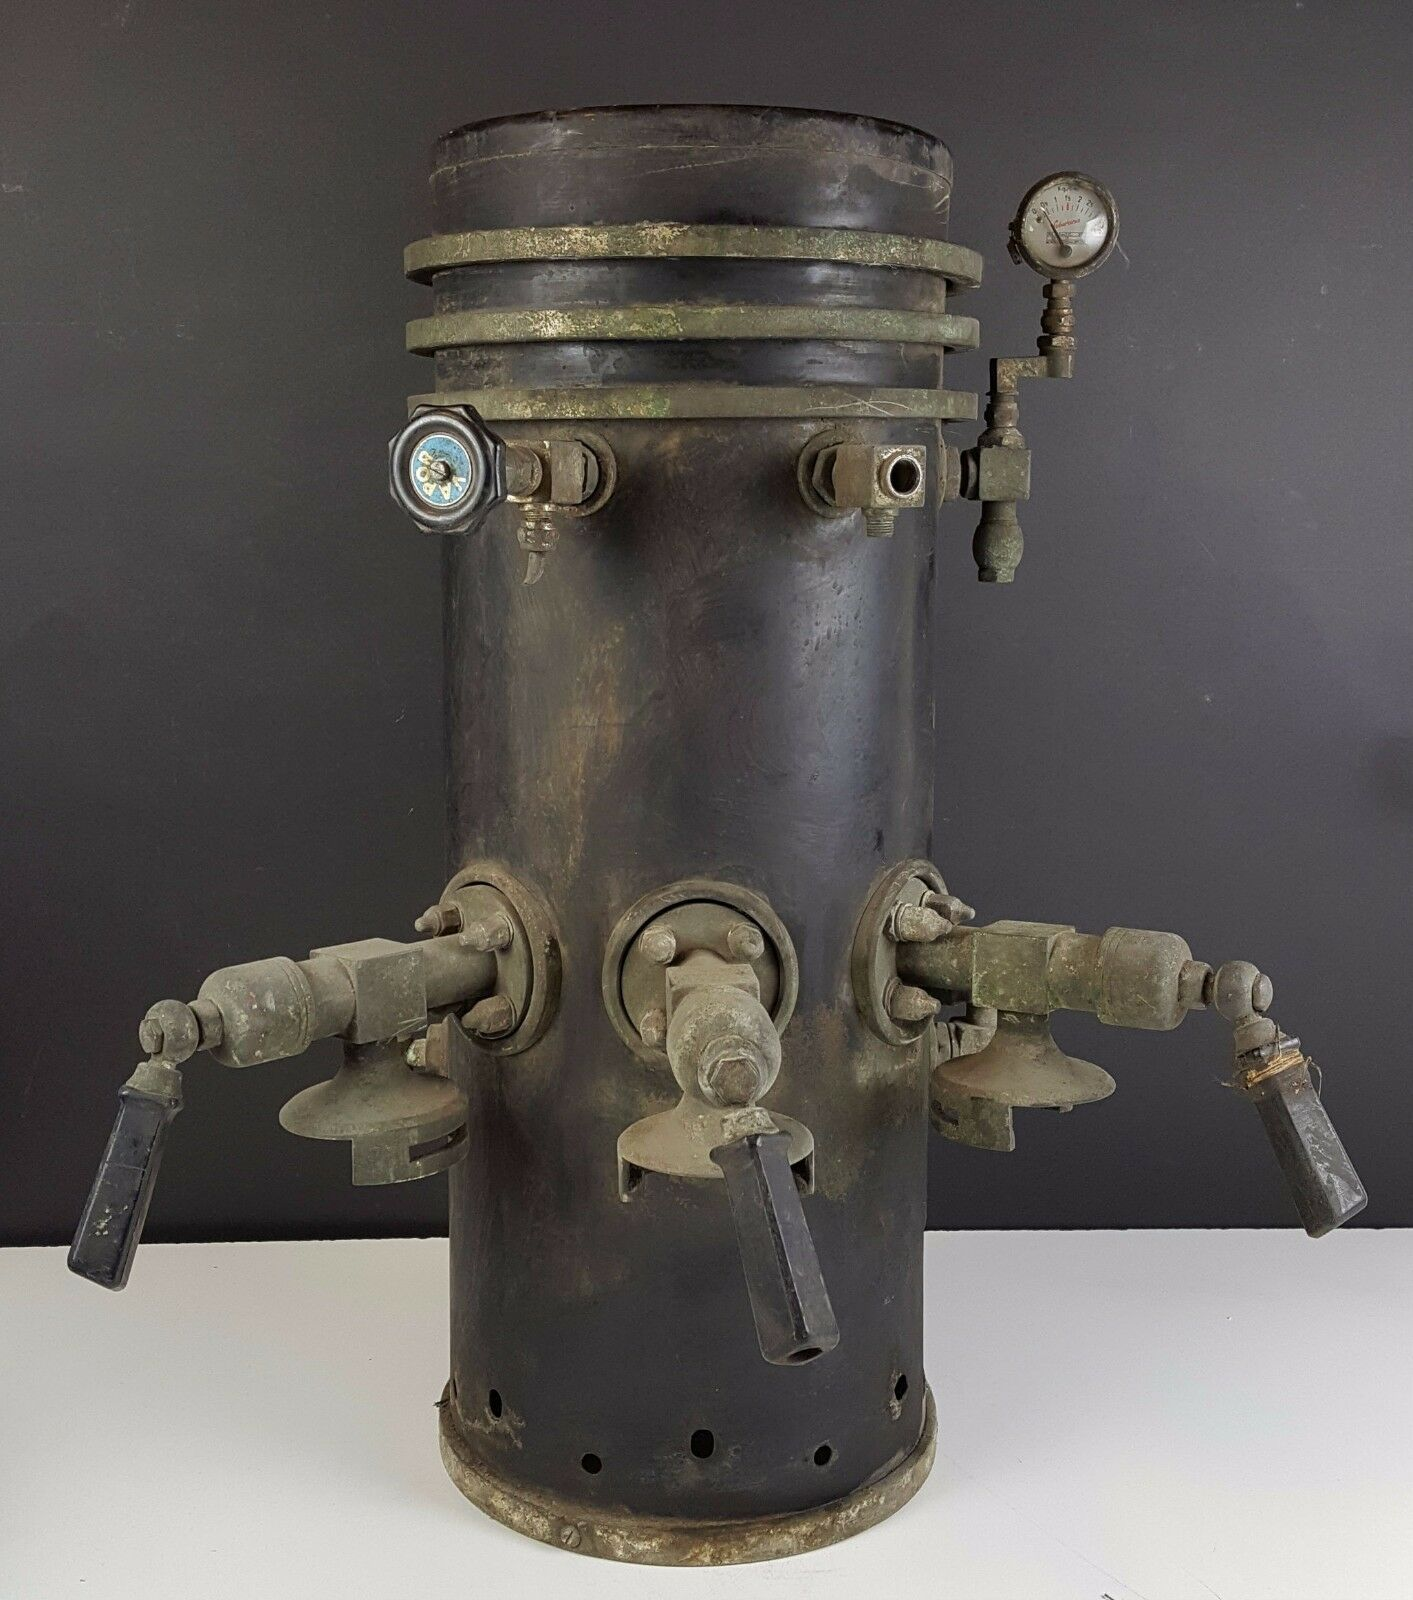 COFFEE MAKER EXPRESS BOILER THREE ARMS. CAMPEONA. CIRCA 1920 1930.